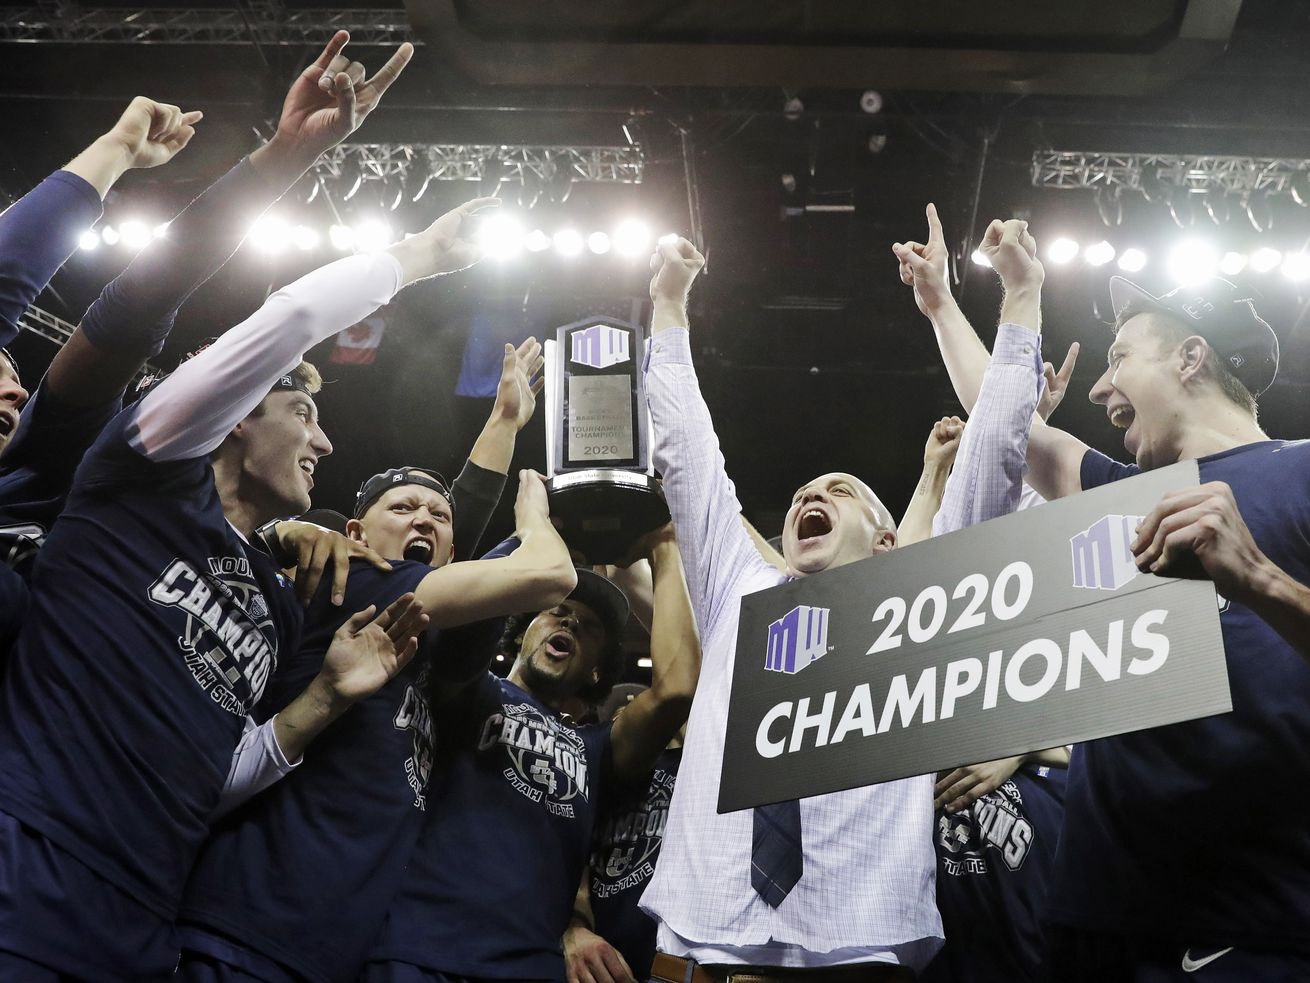 Utah State basketball: Aggies ready to put 'uneven year' behind them